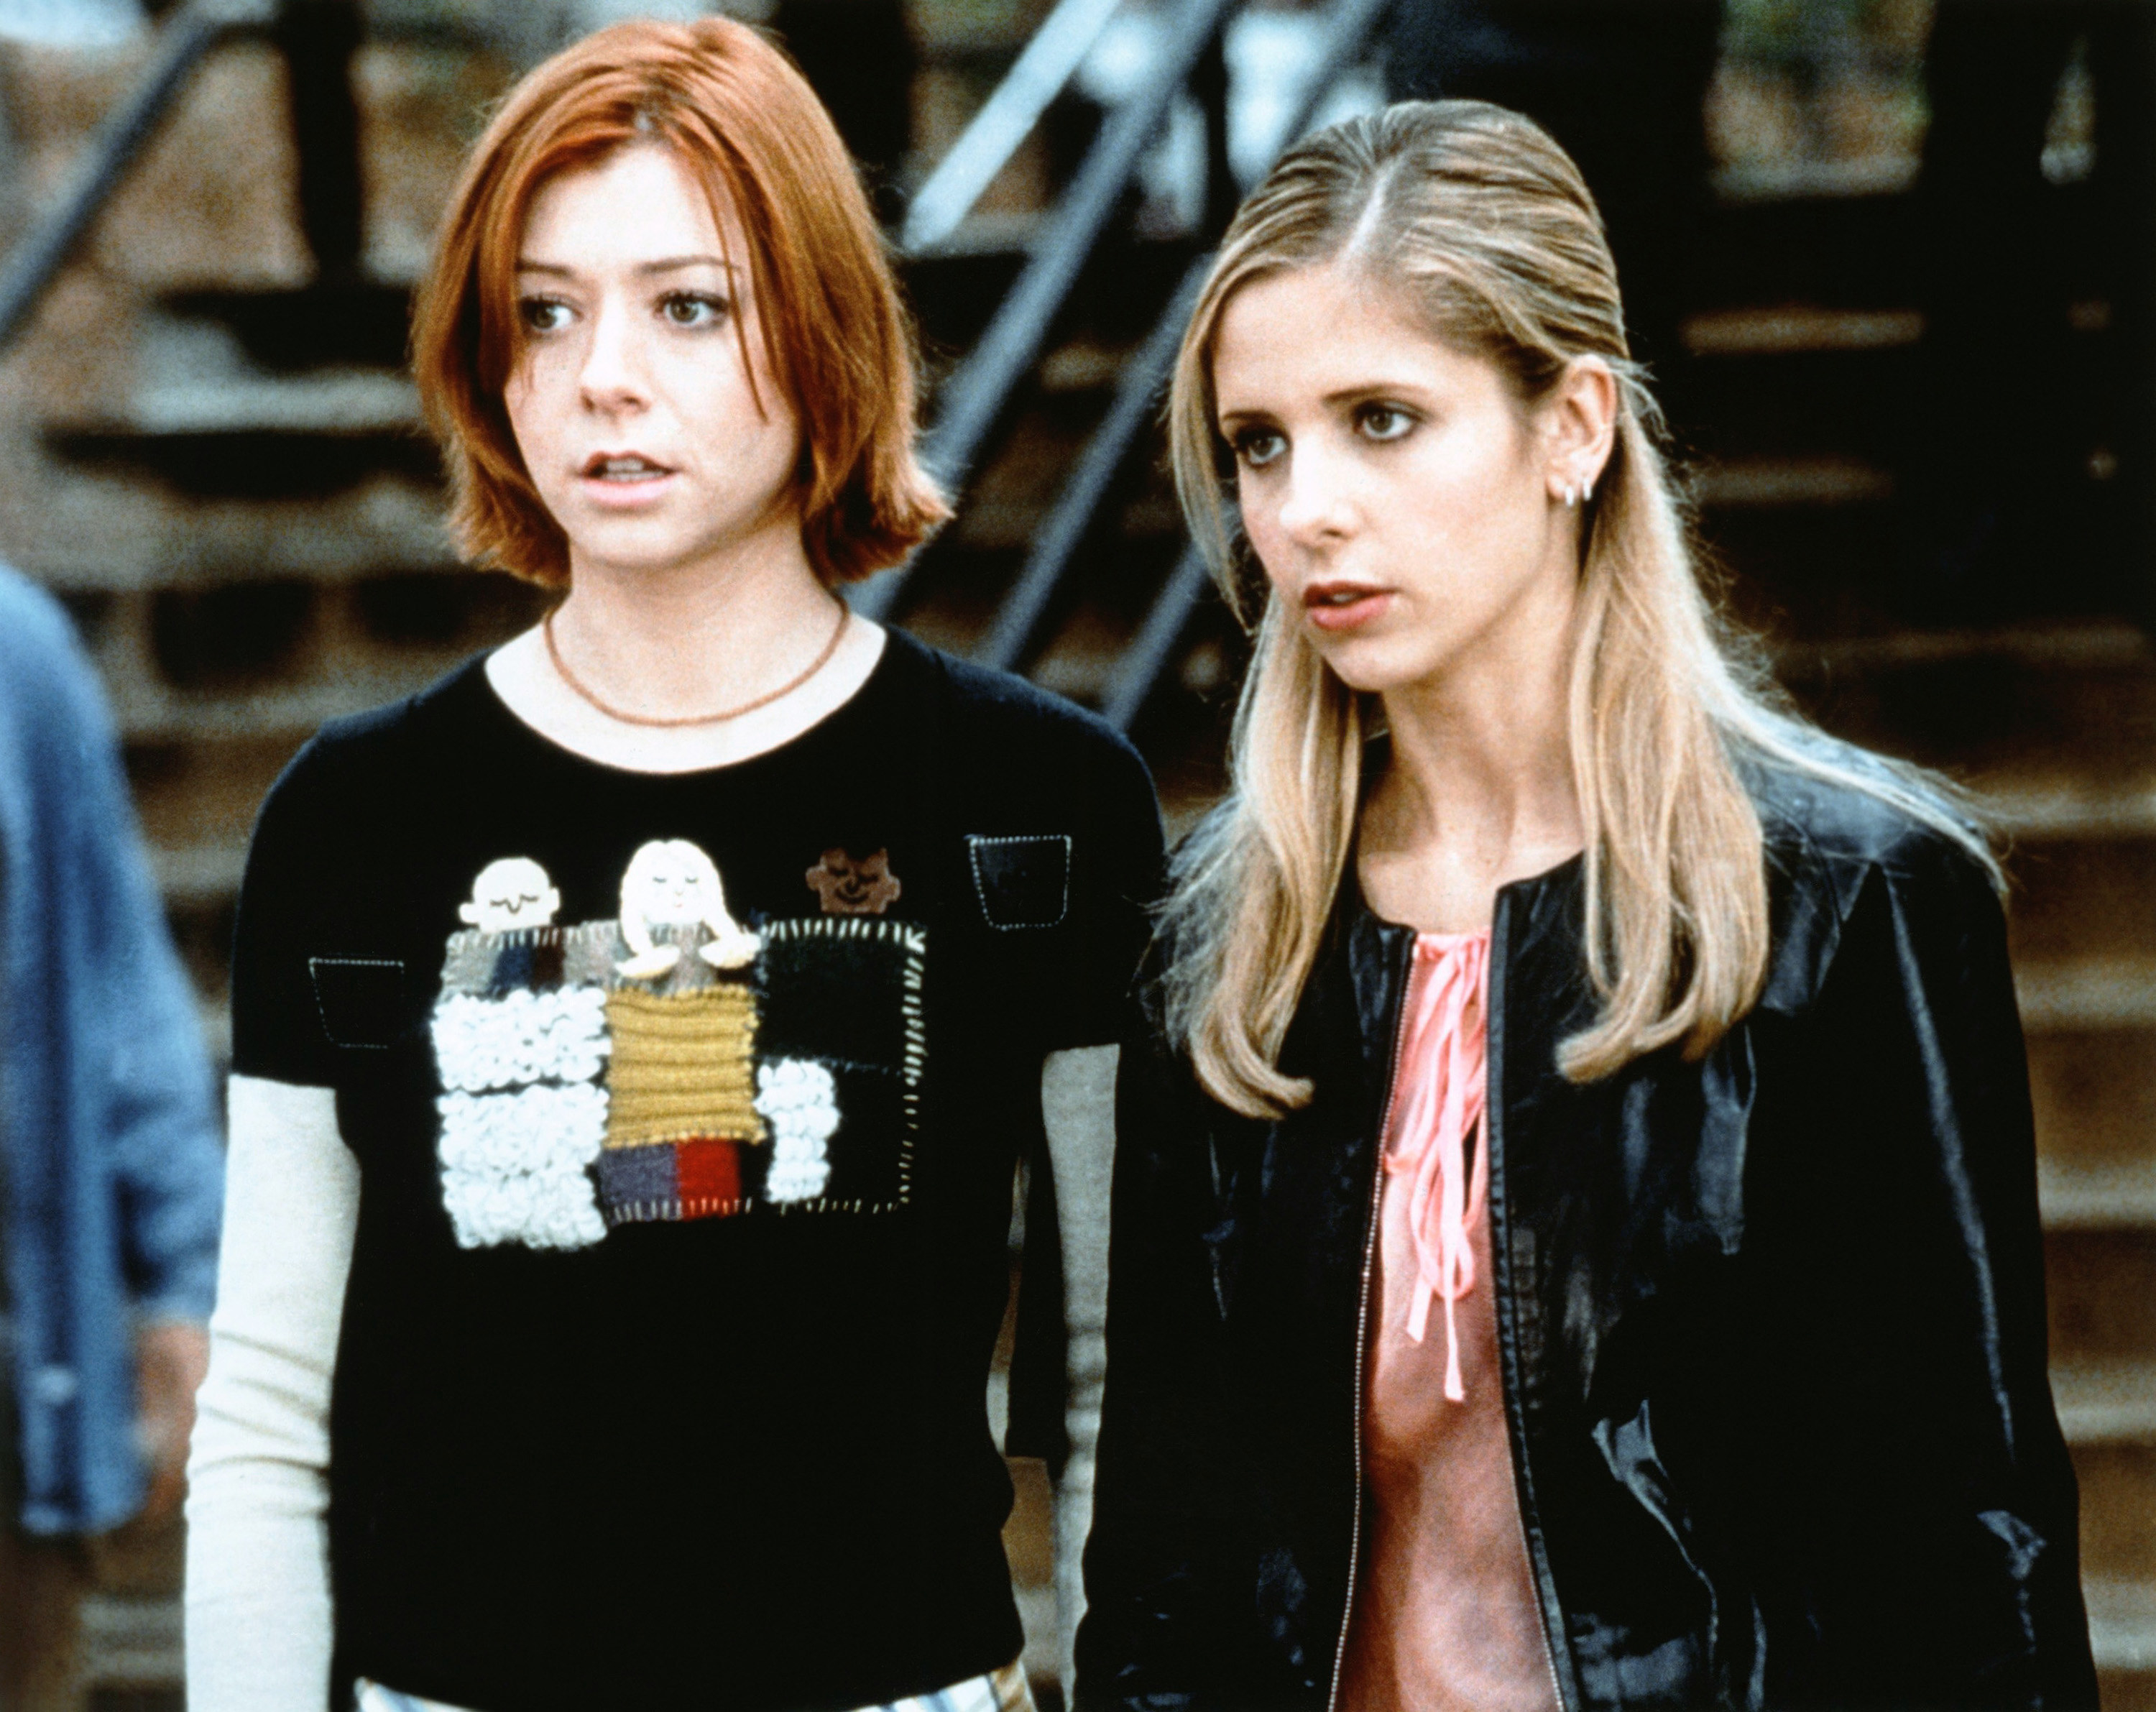 BUFFY THE VAMPIRE SLAYER, (from left): Alyson Hannigan, Sarah Michelle Gellar, 1997-03.